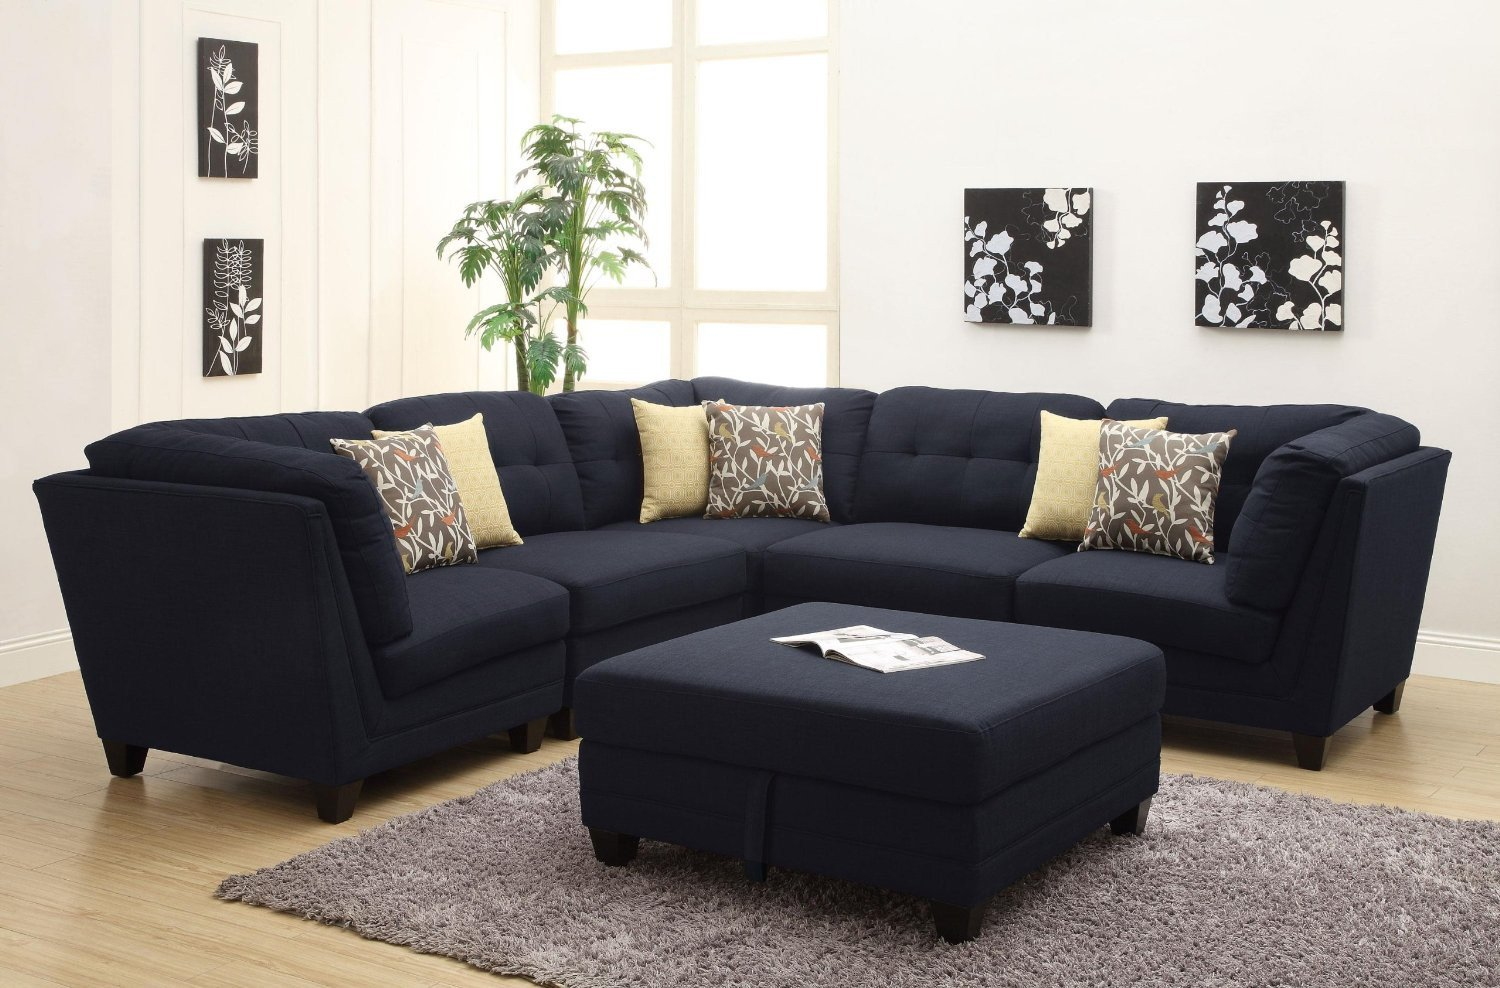 Comfortable Couches Living Room Most fortable sofas